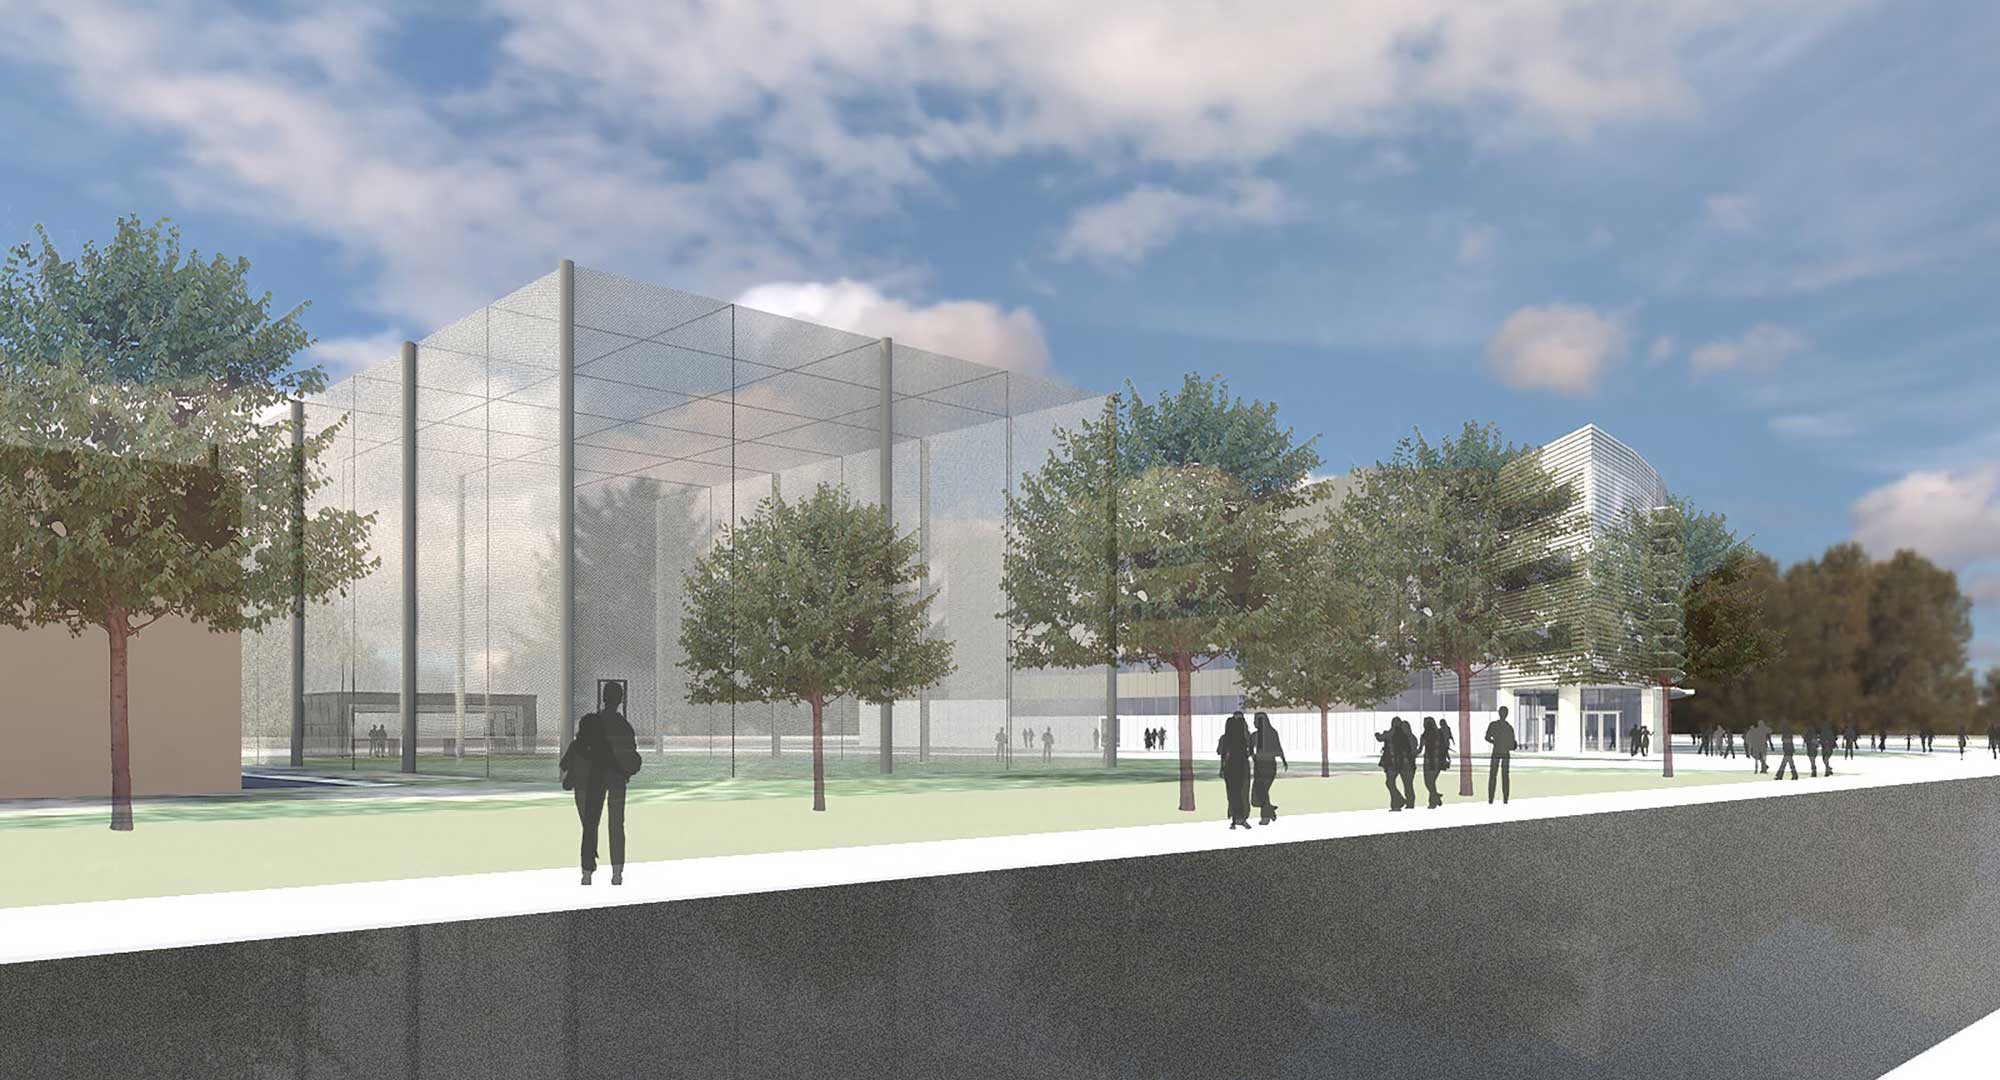 A rendering of the eastward-looking view of M-Air, a netted facility for safely testing drones outside. Construction will begin in August 2017 at the corner of Hayward and Draper on the University of Michigan's North Campus. Image credit: Architect and engineering firm Harley Ellis Devereaux